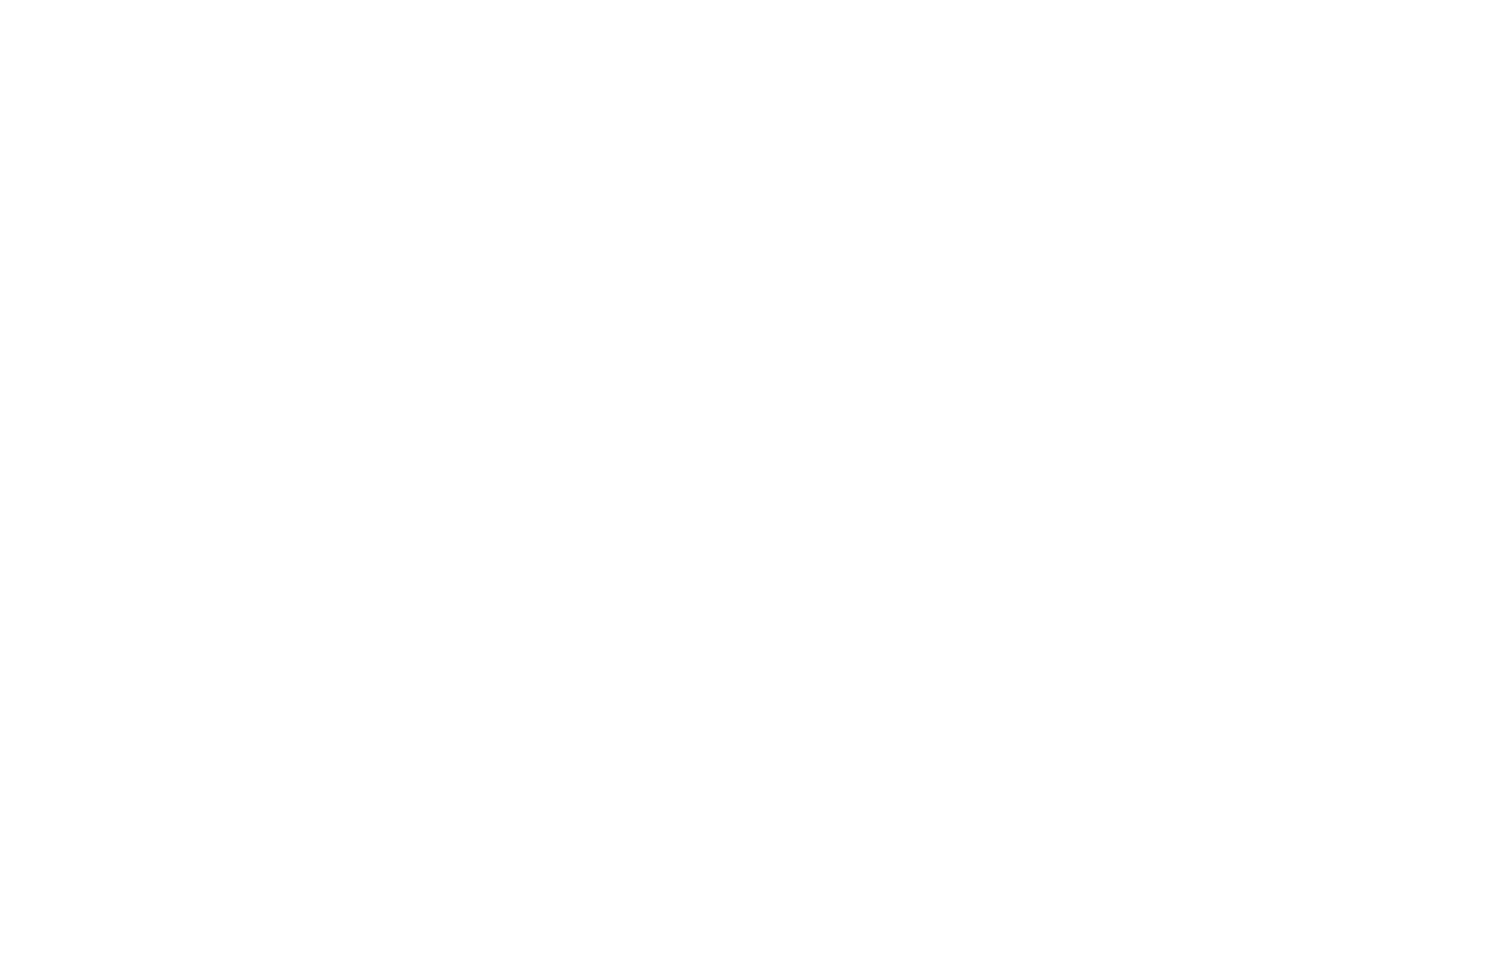 1st Freedom Bail Bonds